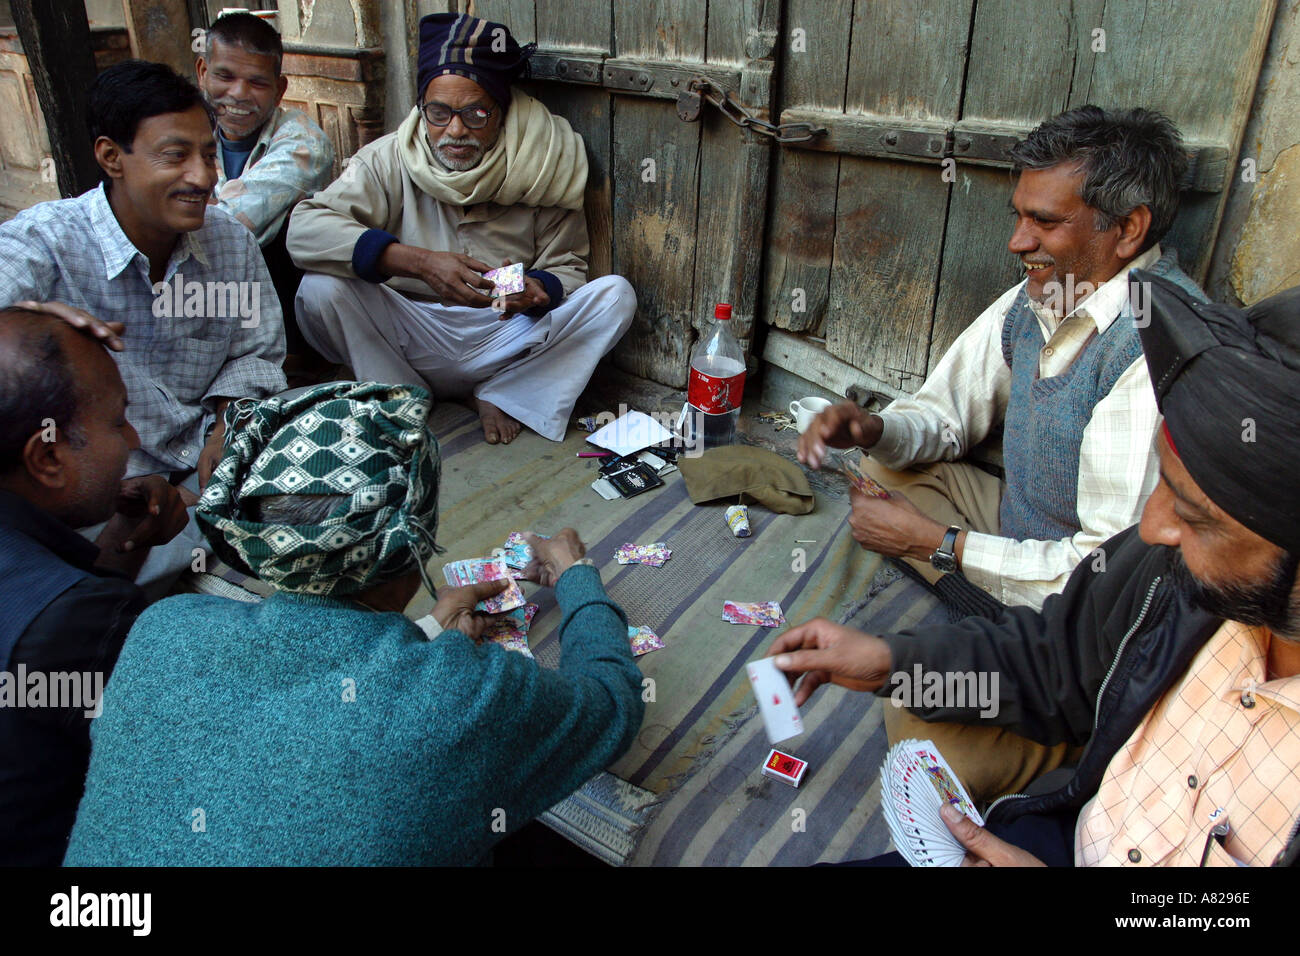 A group of Indian men play cards on the street in Delhi India - Stock Image